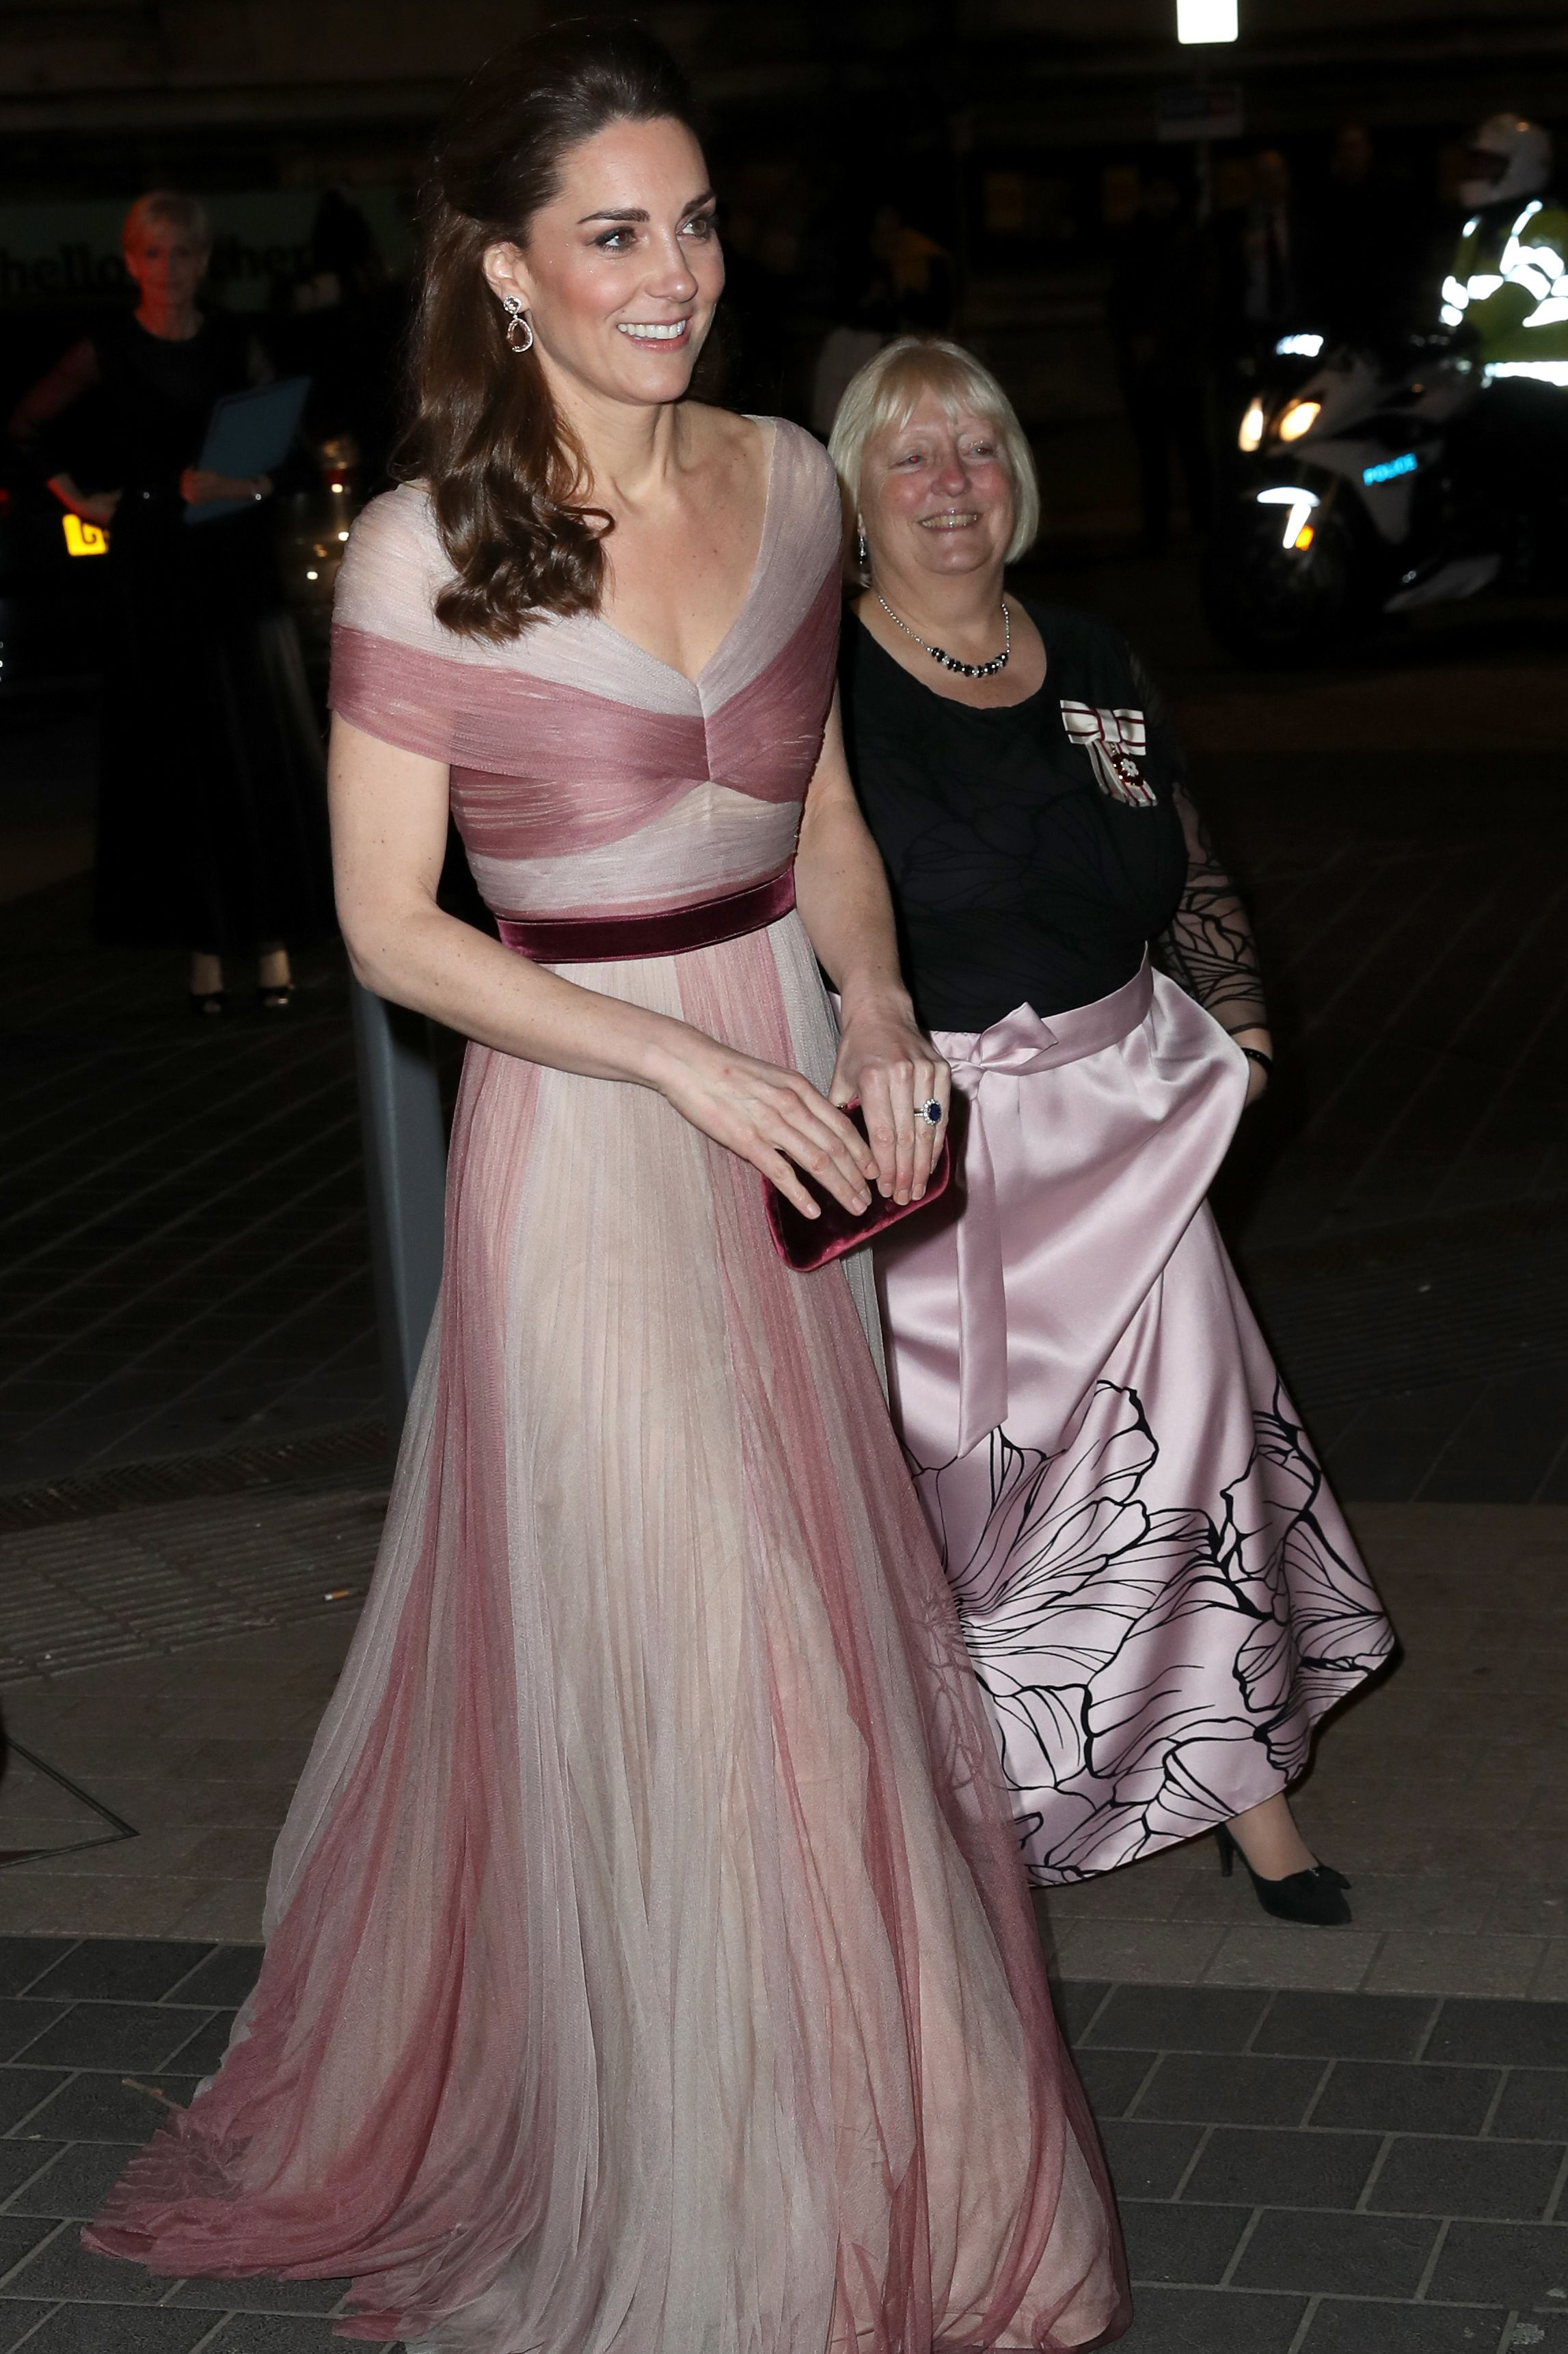 Kate Middleton arrived to the 100 Women in Finance Gala at the Victoria & Albert Museum wearing a rose-colored gown by Gucci. The duchess paired the look with a raspberry velvet clutch that matched her belt and pear-shaped drop earrings.